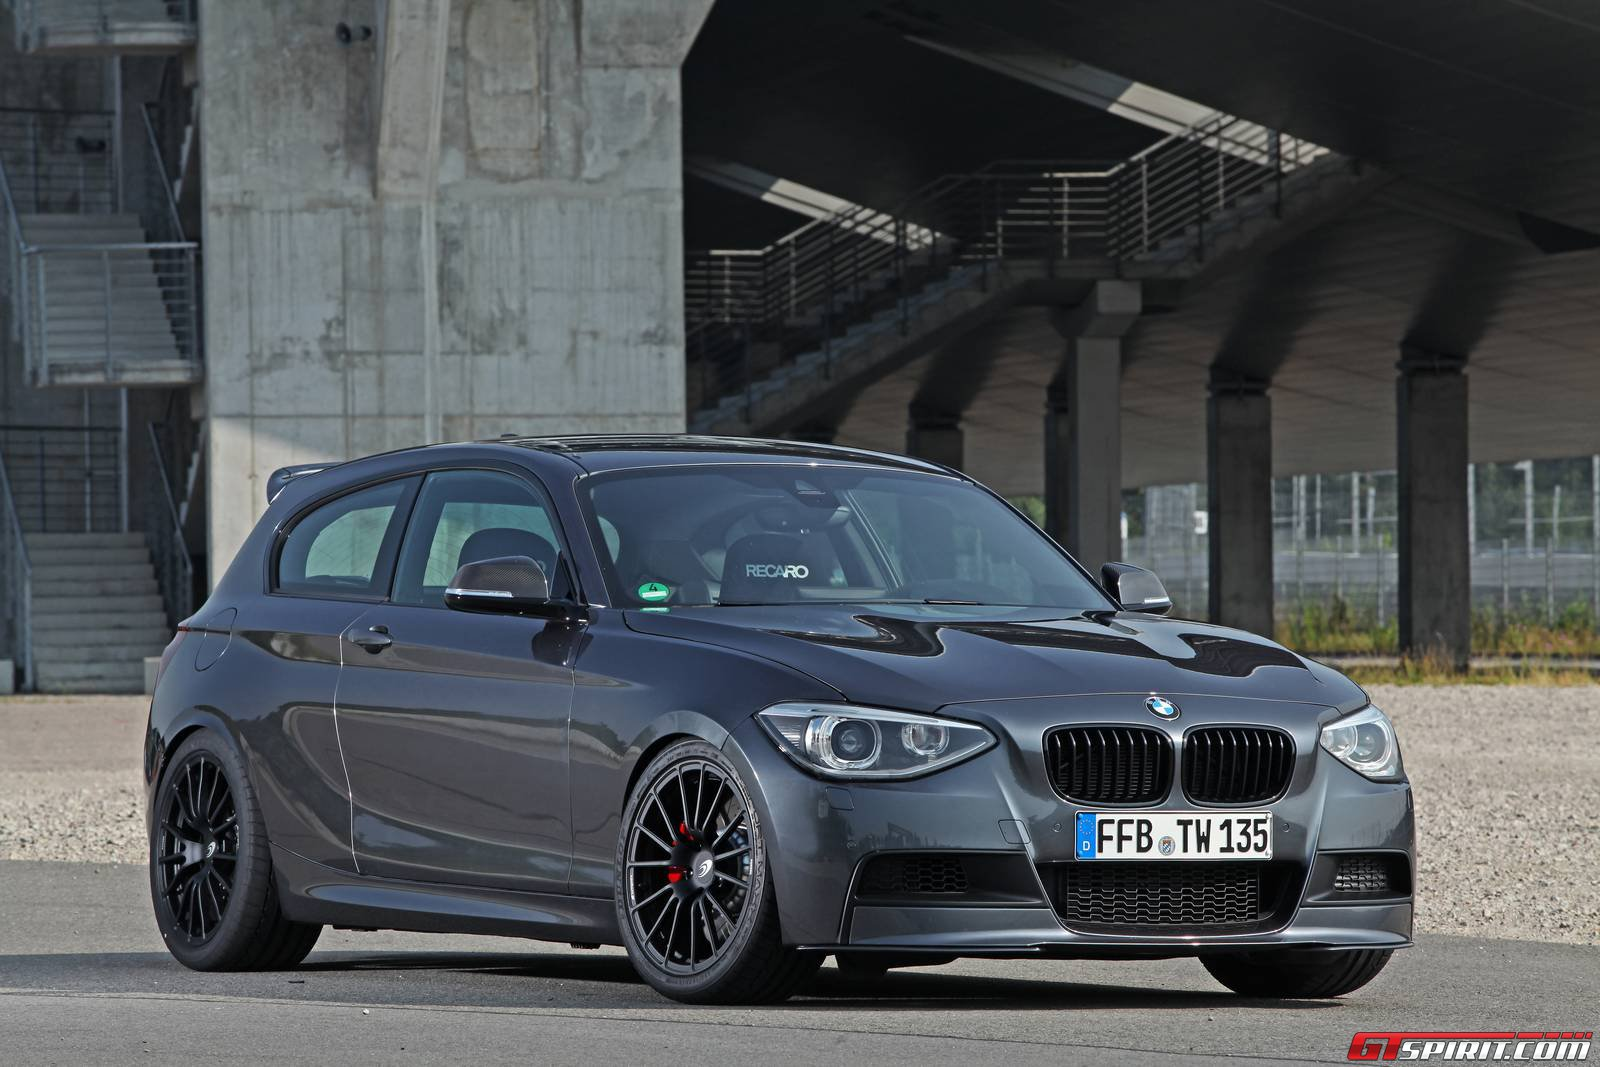 official tuningwerk bmw m135i gtspirit. Black Bedroom Furniture Sets. Home Design Ideas